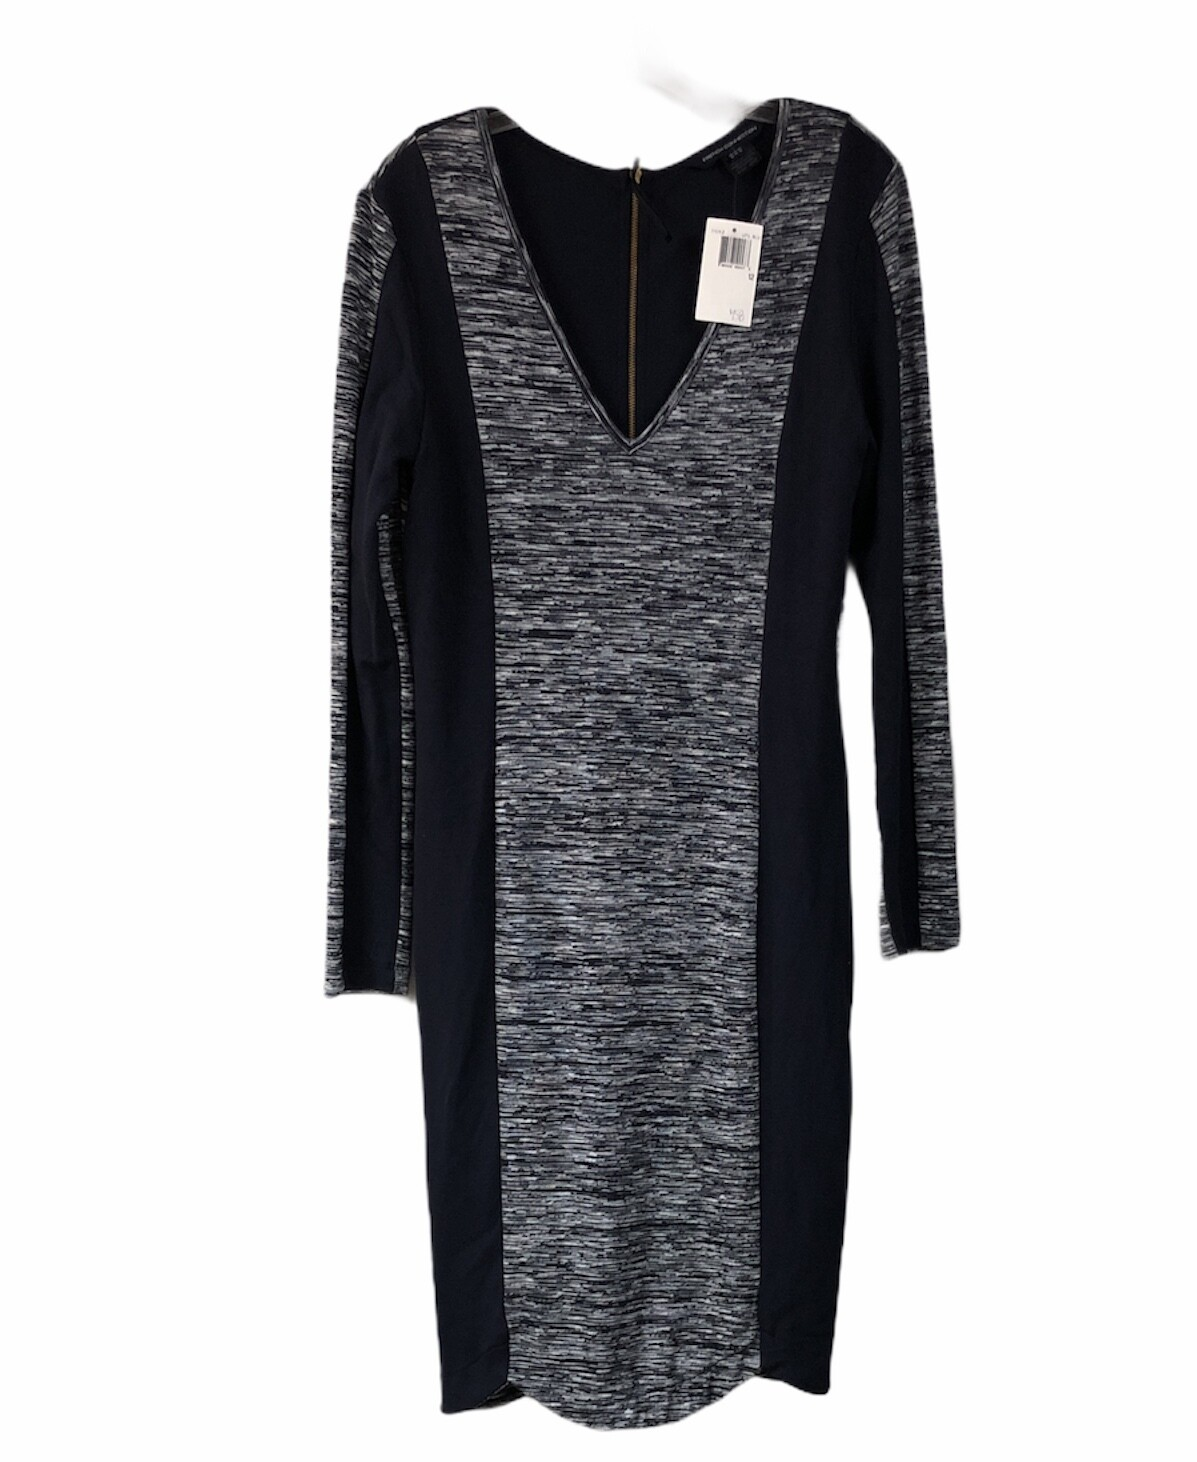 "New FRENCH CONNECTION ""City Block Space"" V Neck Dress size 12 $158"